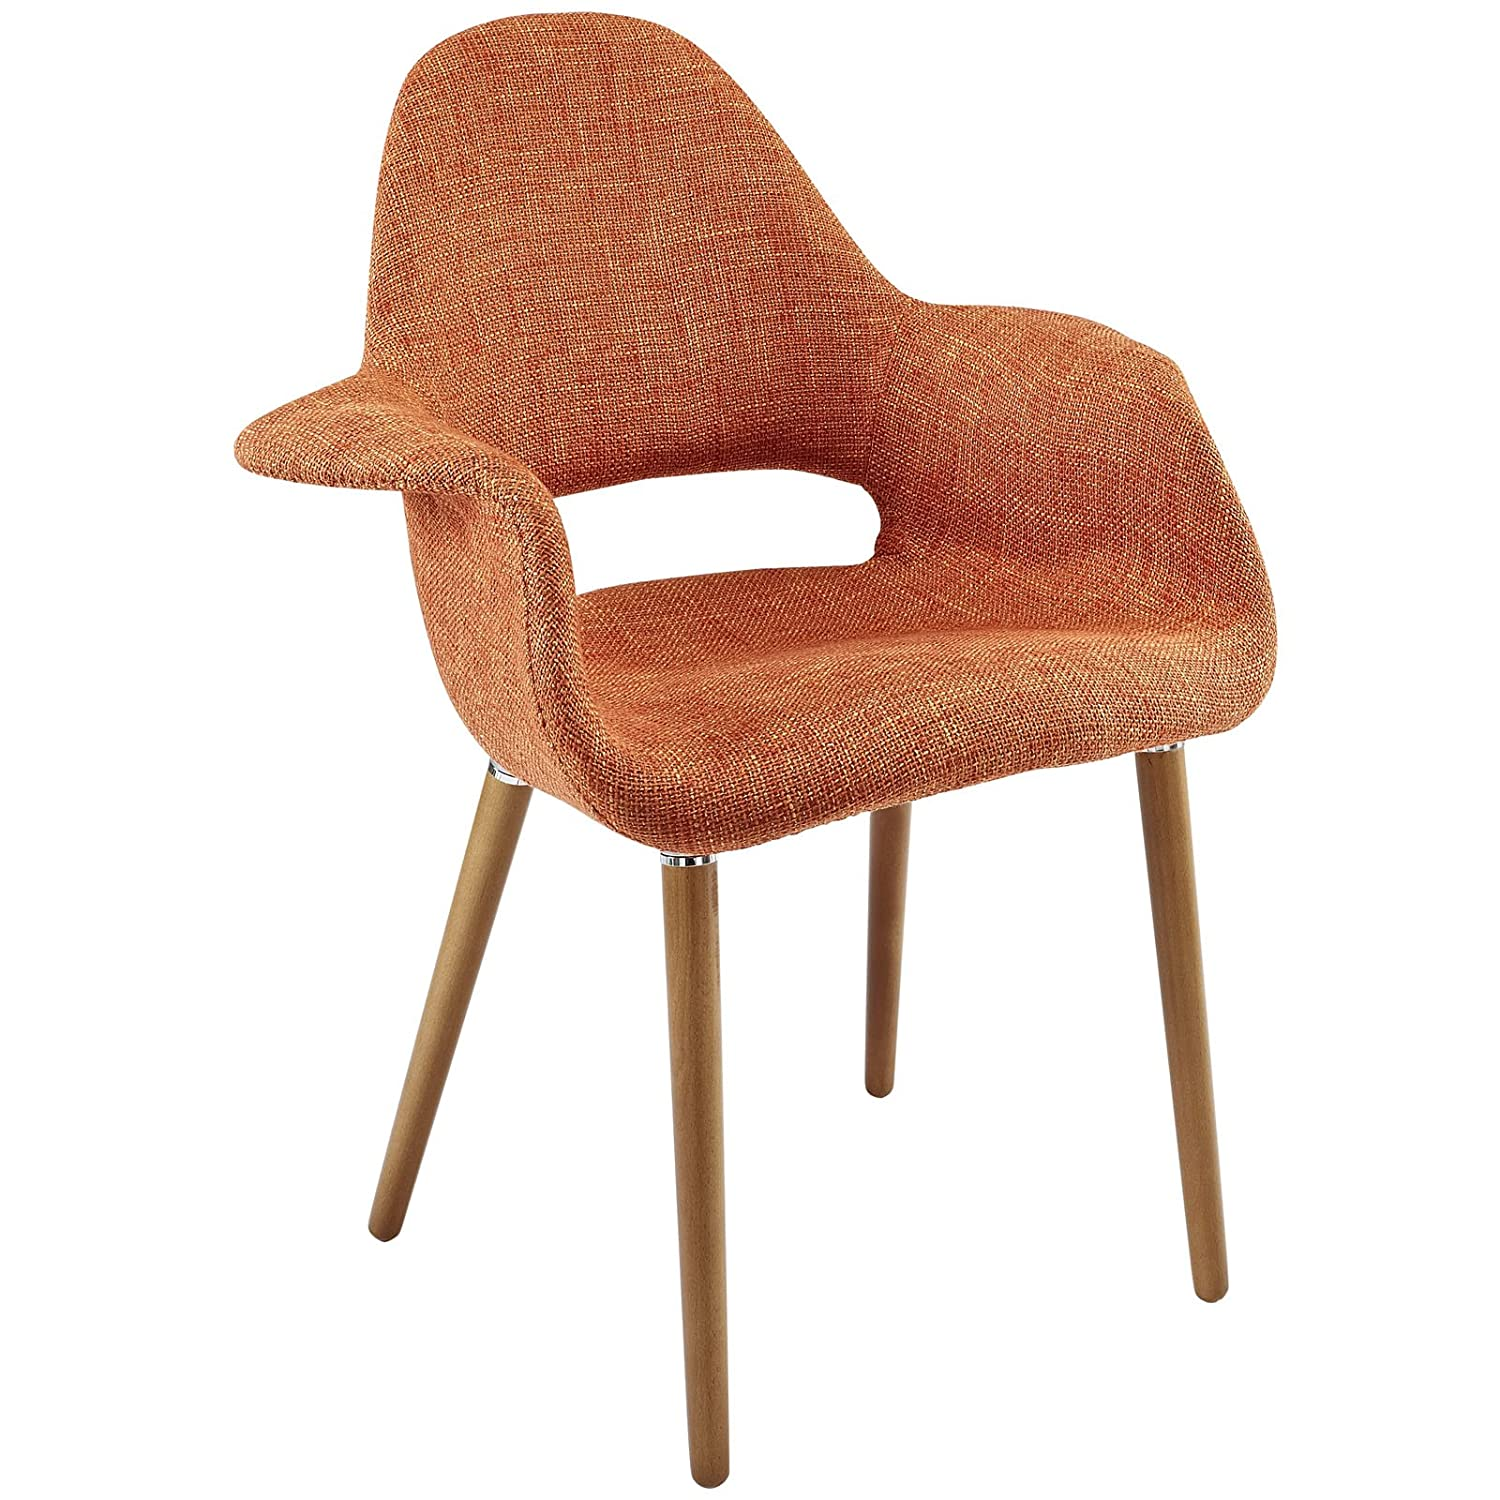 Modway Aegis Mid-Century Modern Upholstered Fabric Organic Dining Armchair With Wood Legs In Orange